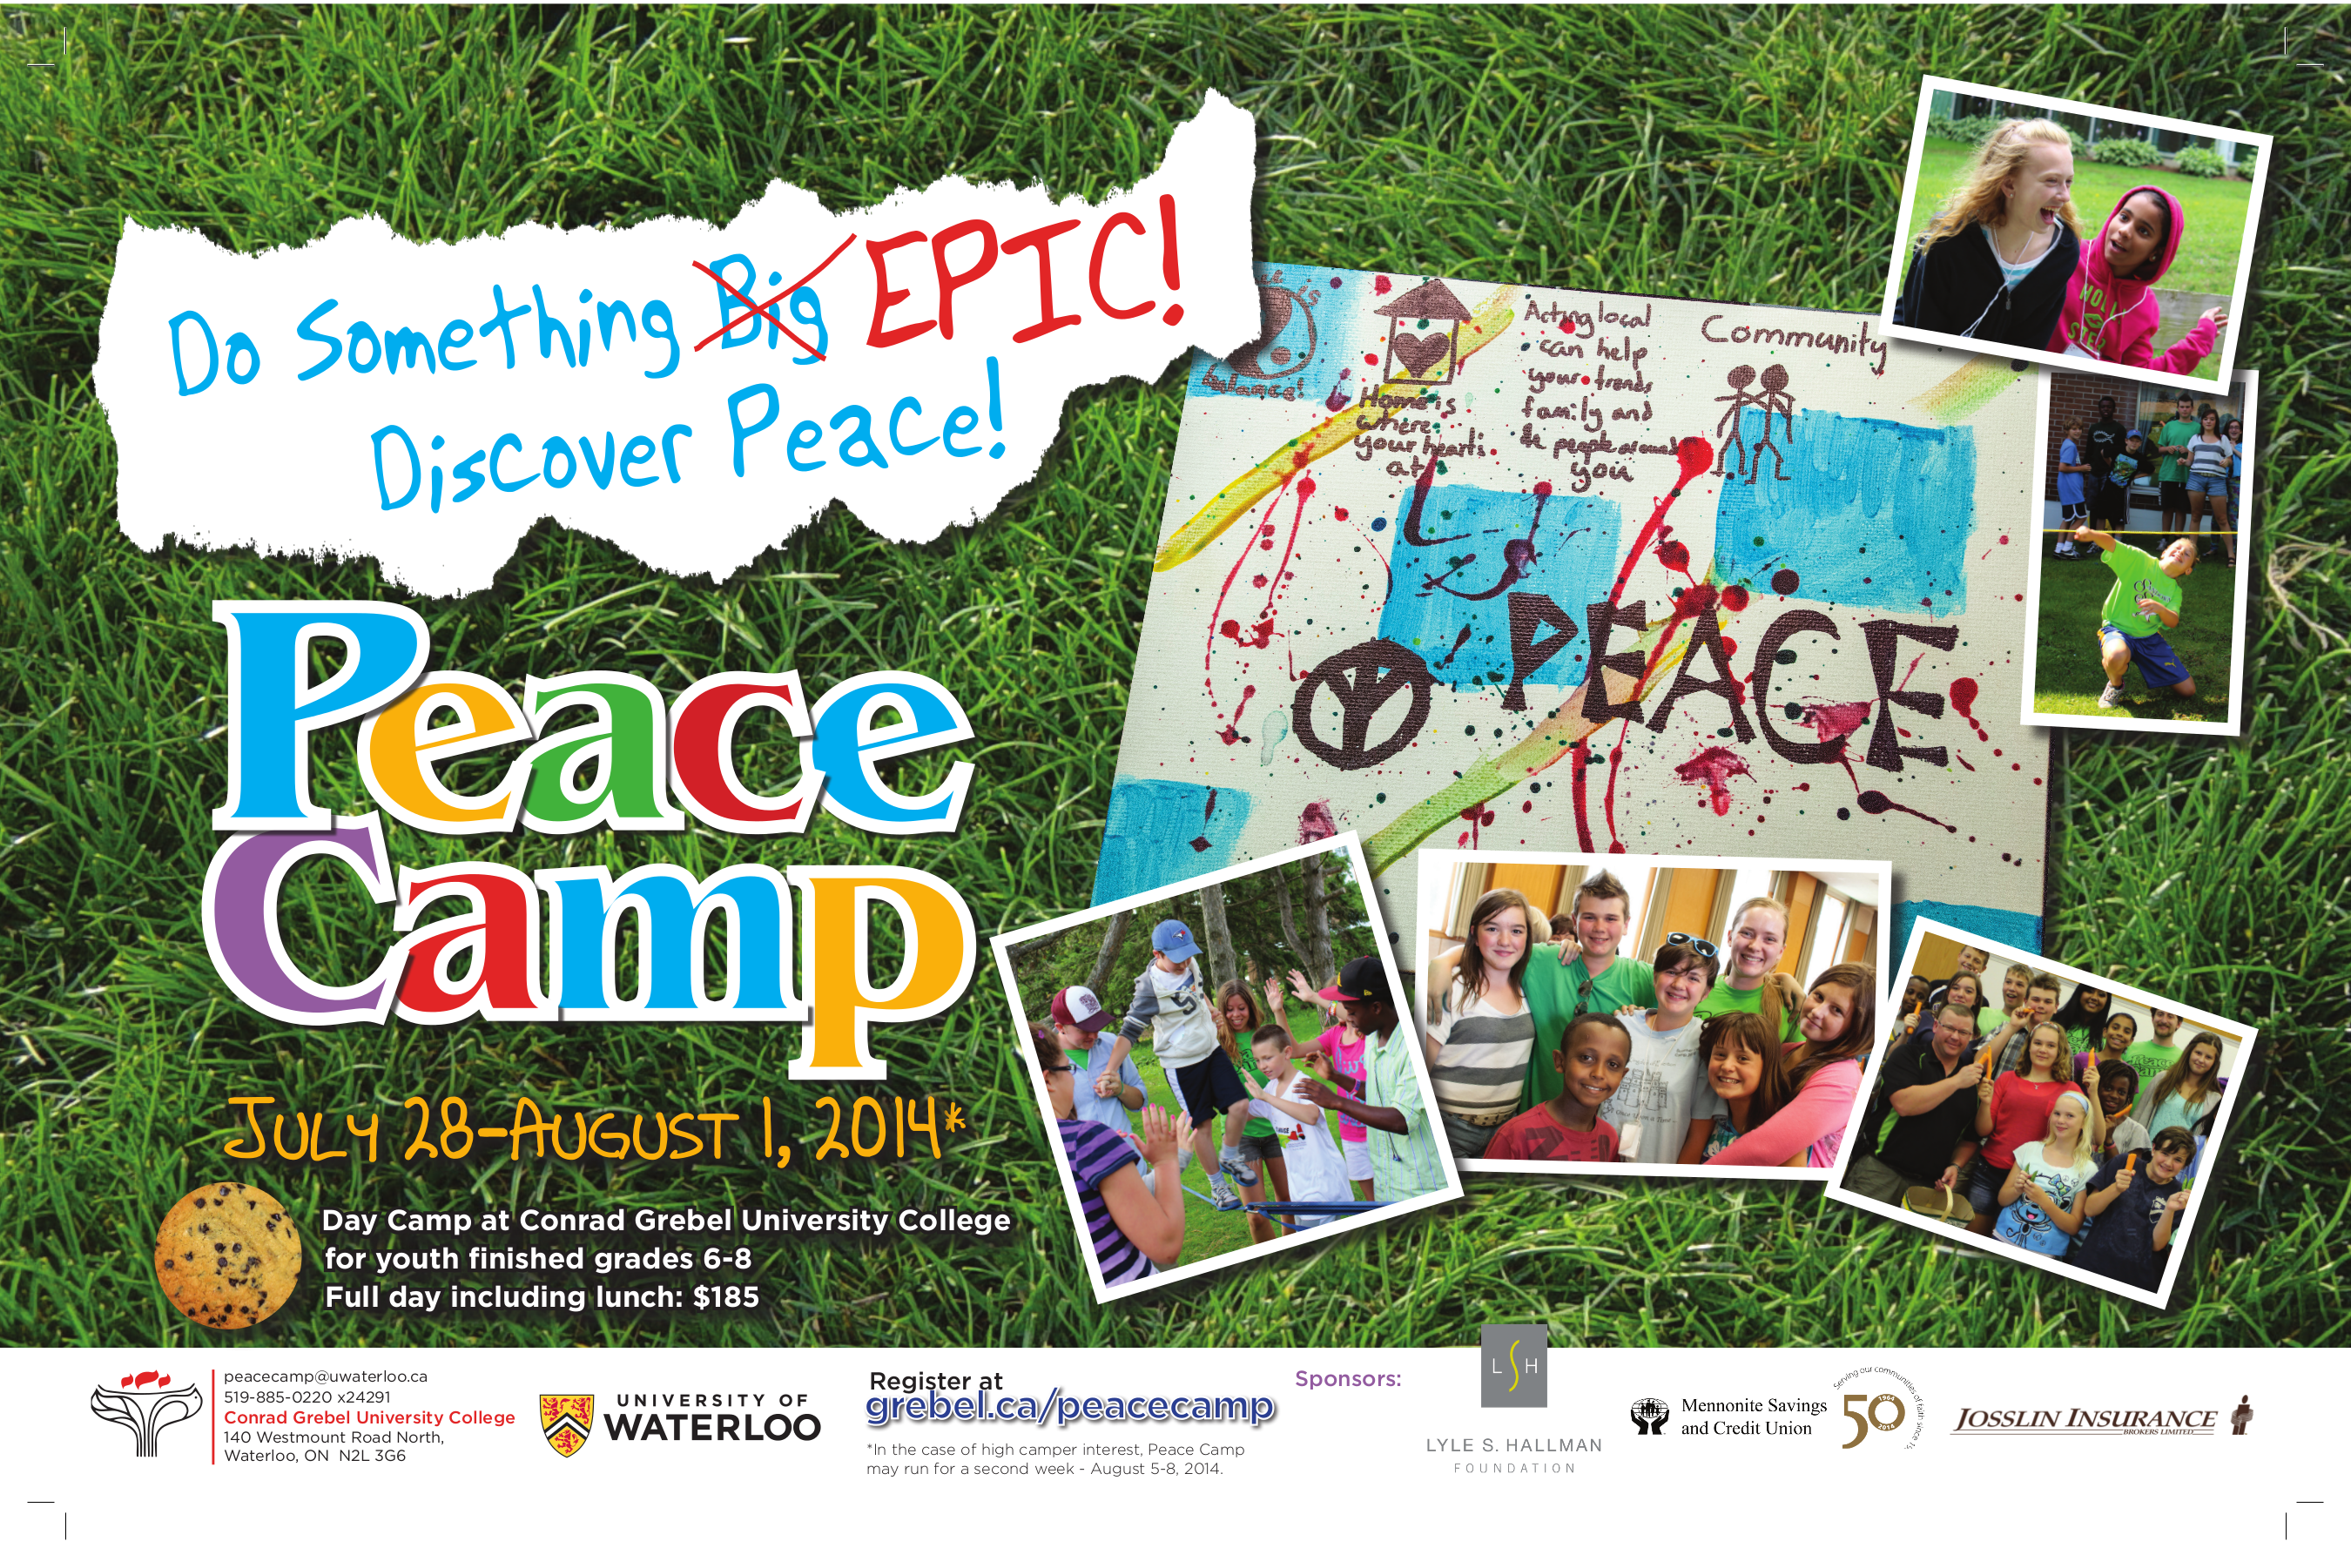 Peace Camp, July 28 to August 1, 2014